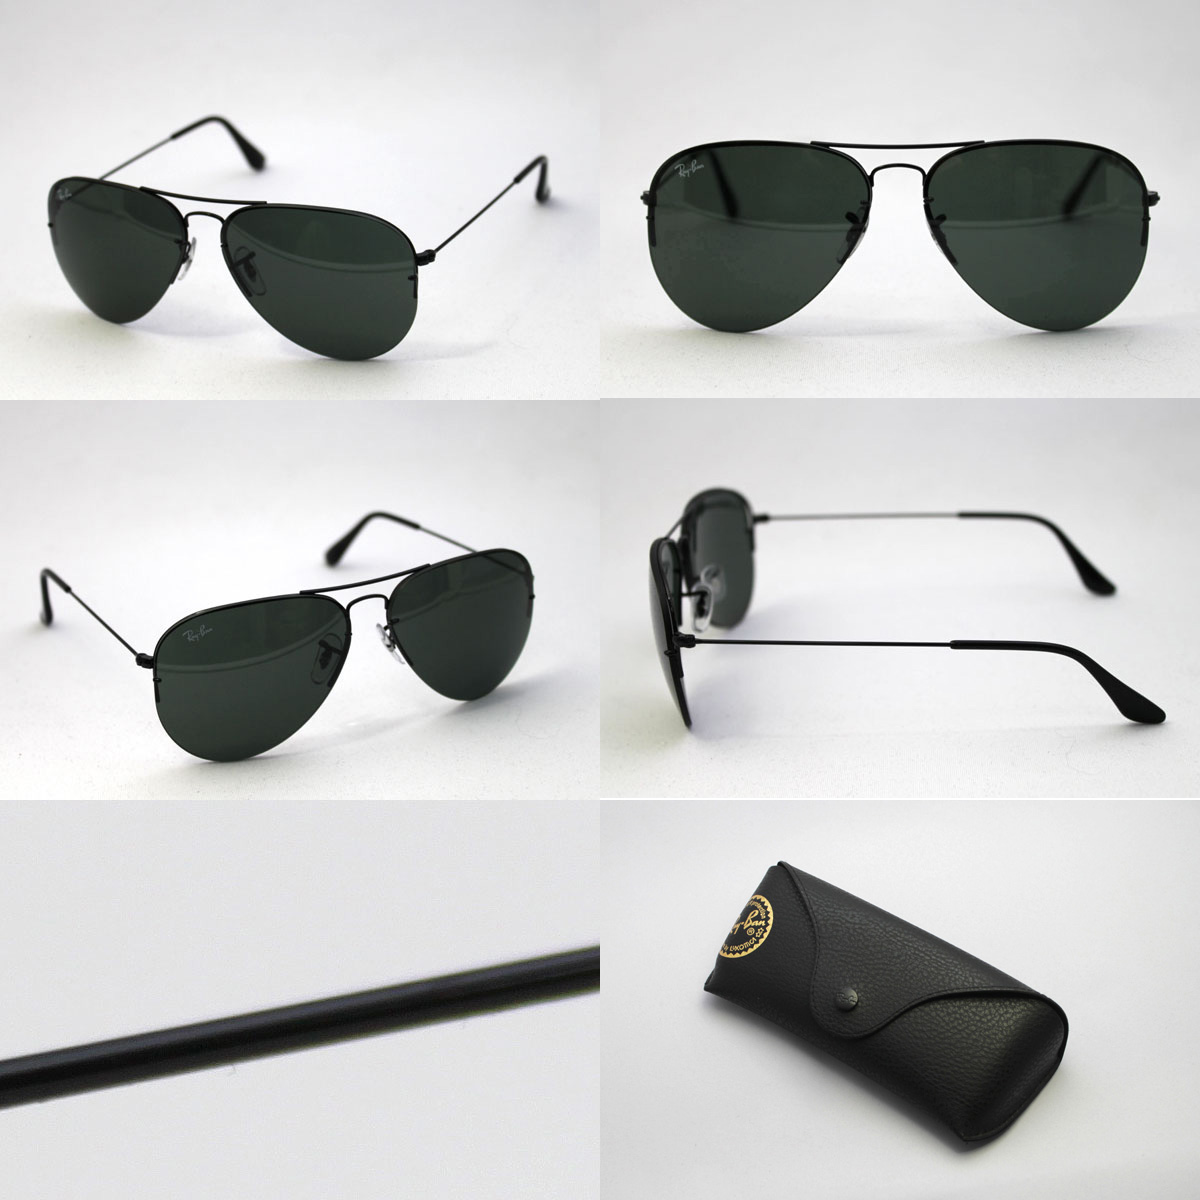 22d27db075ba8 ... coupon code rb3460 00271 rayban ray ban sunglasses flip out new arrival  glassmania dcbe0 cfa64